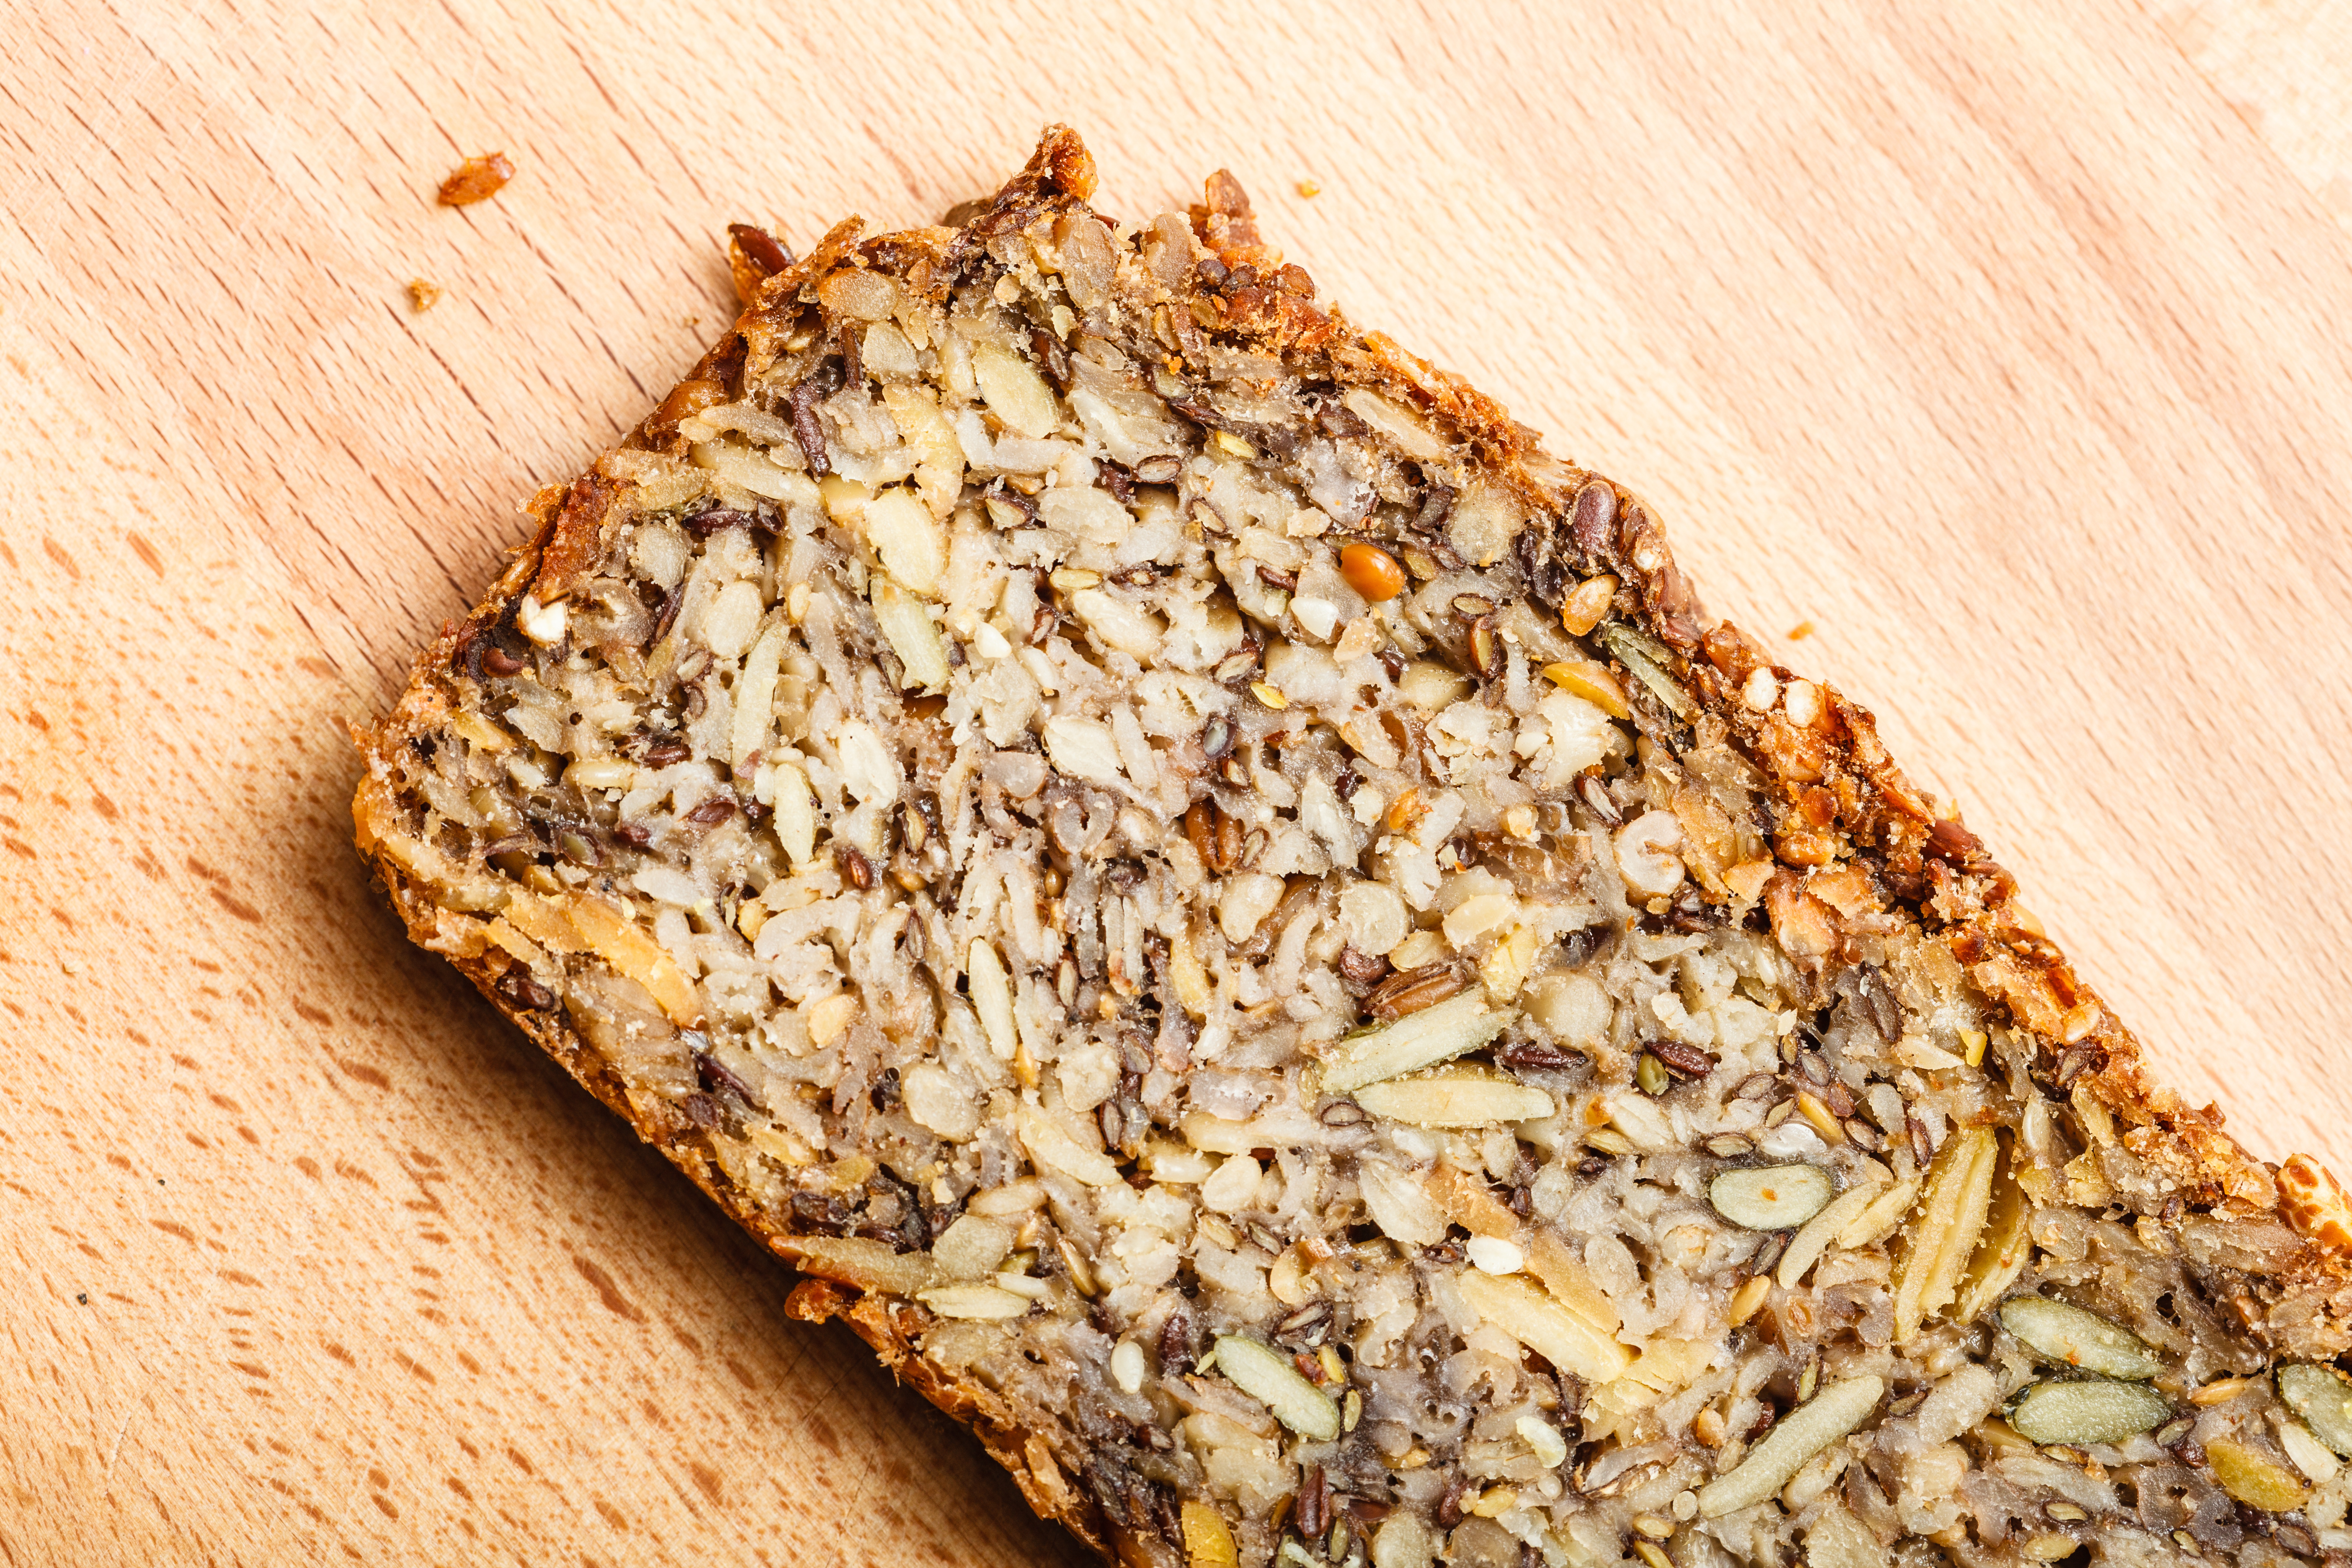 Healthy food, fit diet products concept. Whole grain bread with many big grains